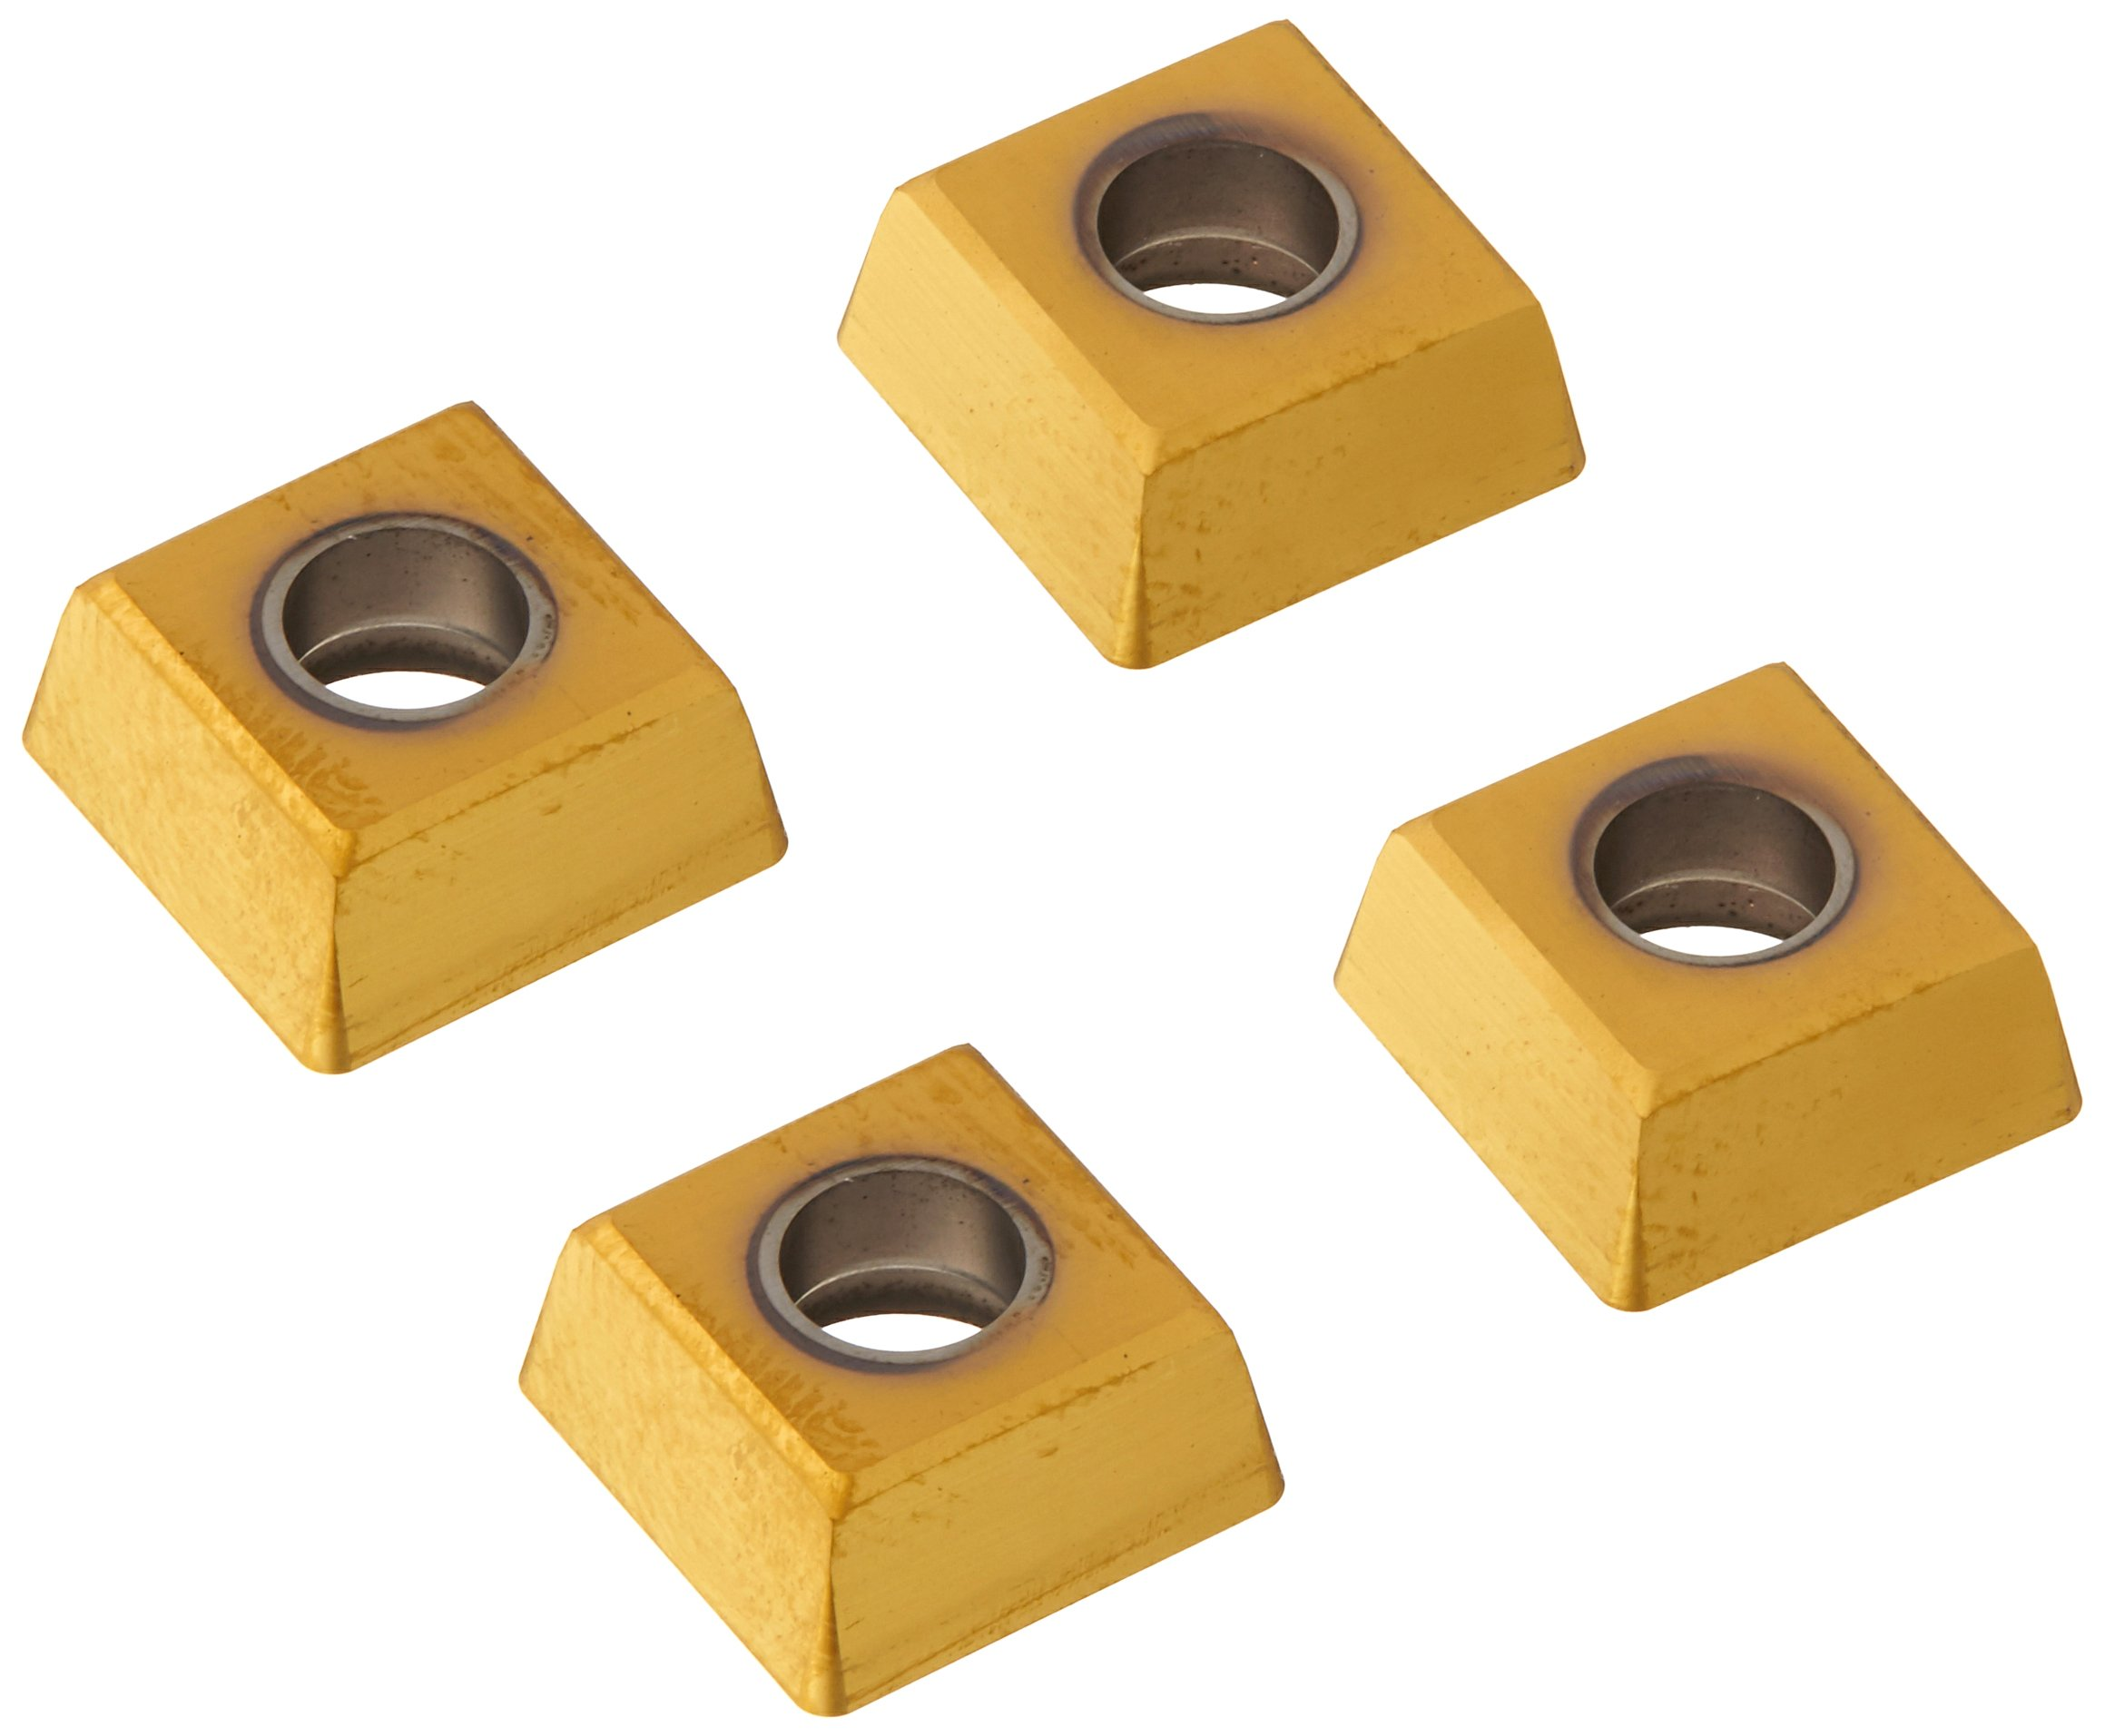 Metabo 623564000 Square Carbide Insert for KFMPB/KFM15/16 (10 Piece)